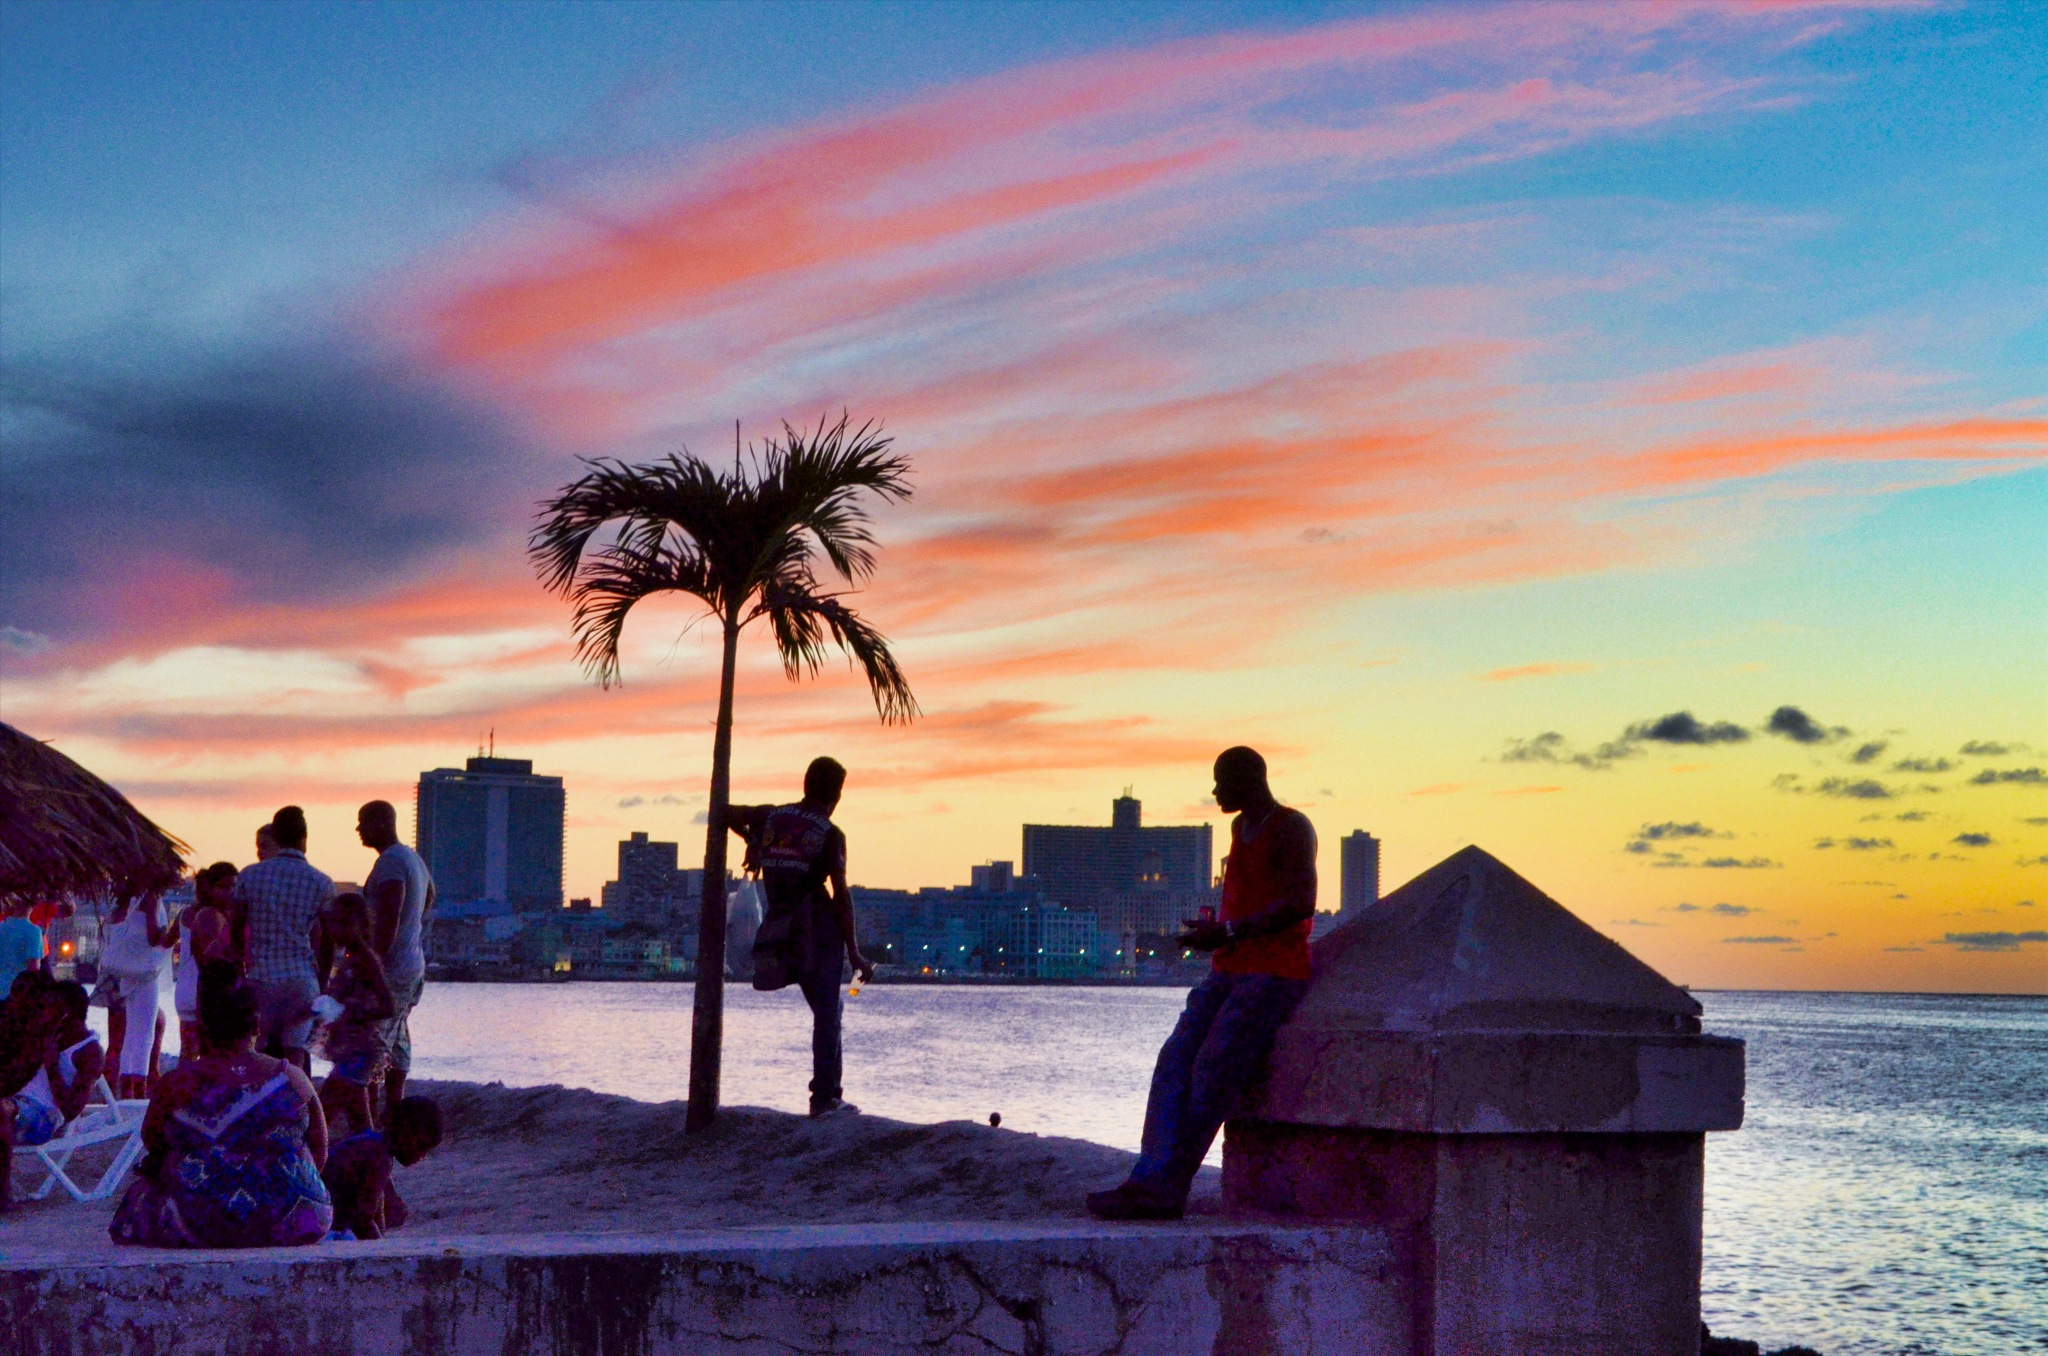 End of the day in Havana by Harrison Hanville